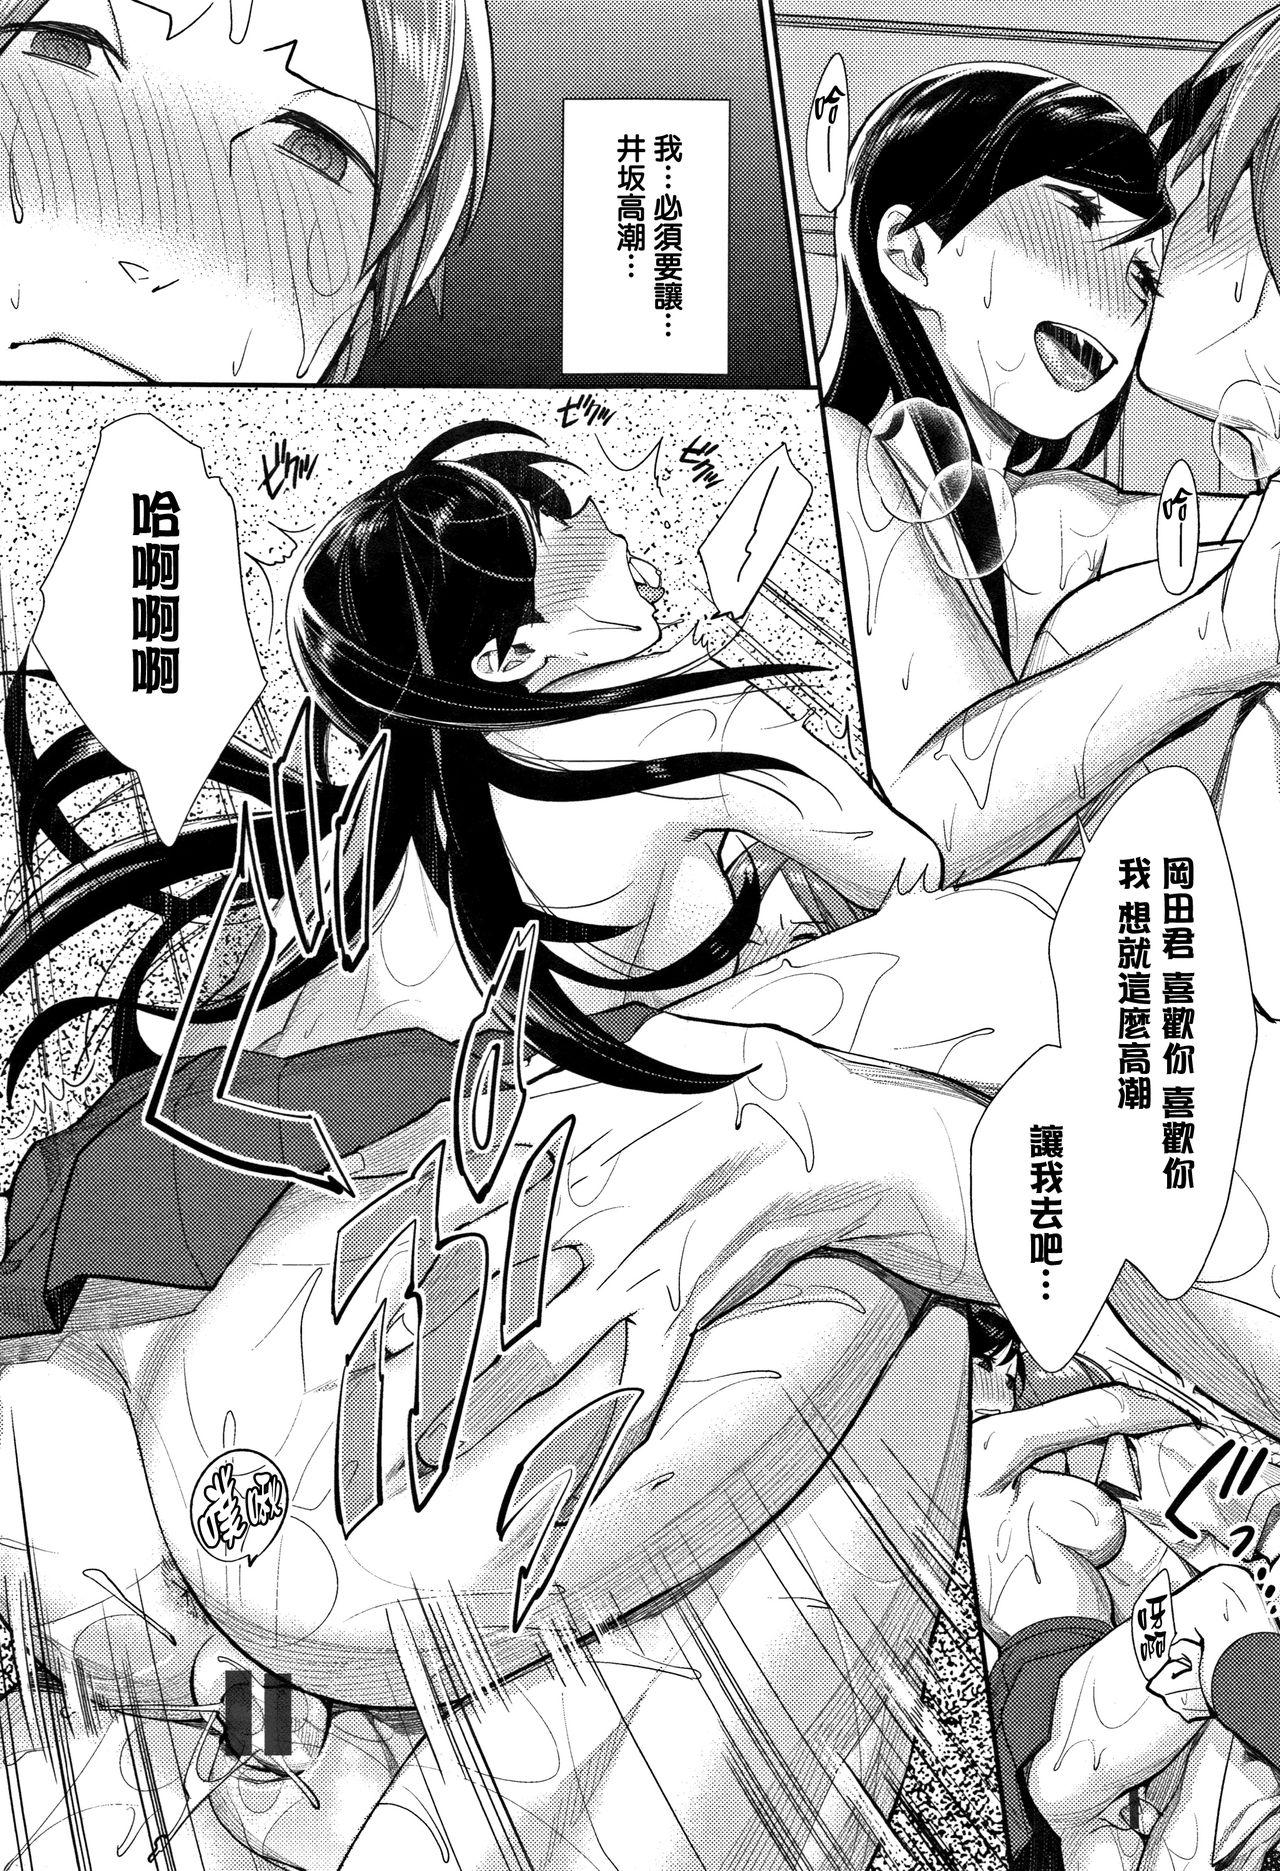 [MGMEE] Bokura no Etude - Our H Chu Do Ch.1-7 [Chinese] [無邪気漢化組] 68